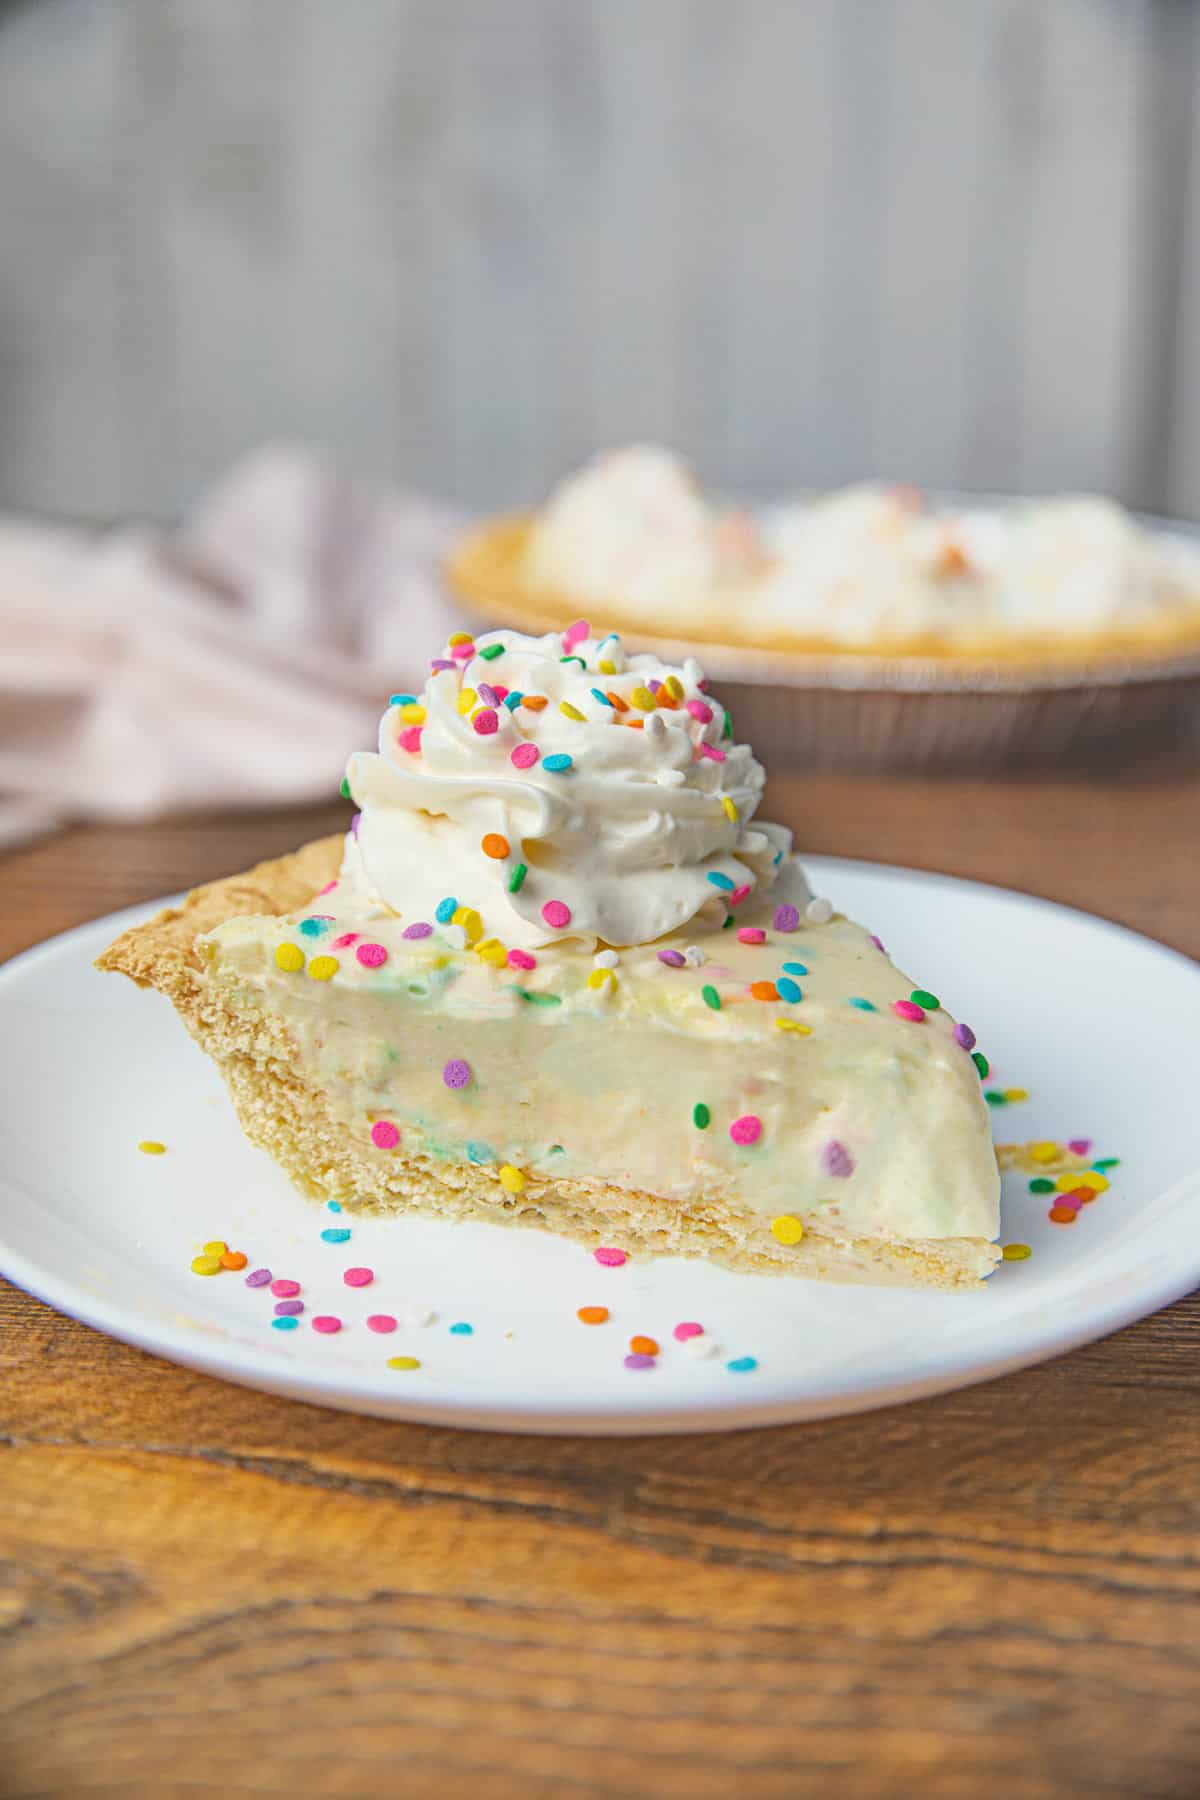 Slice of Birthday Cake Pie with Whipped Cream and Rainbow Sprinkles